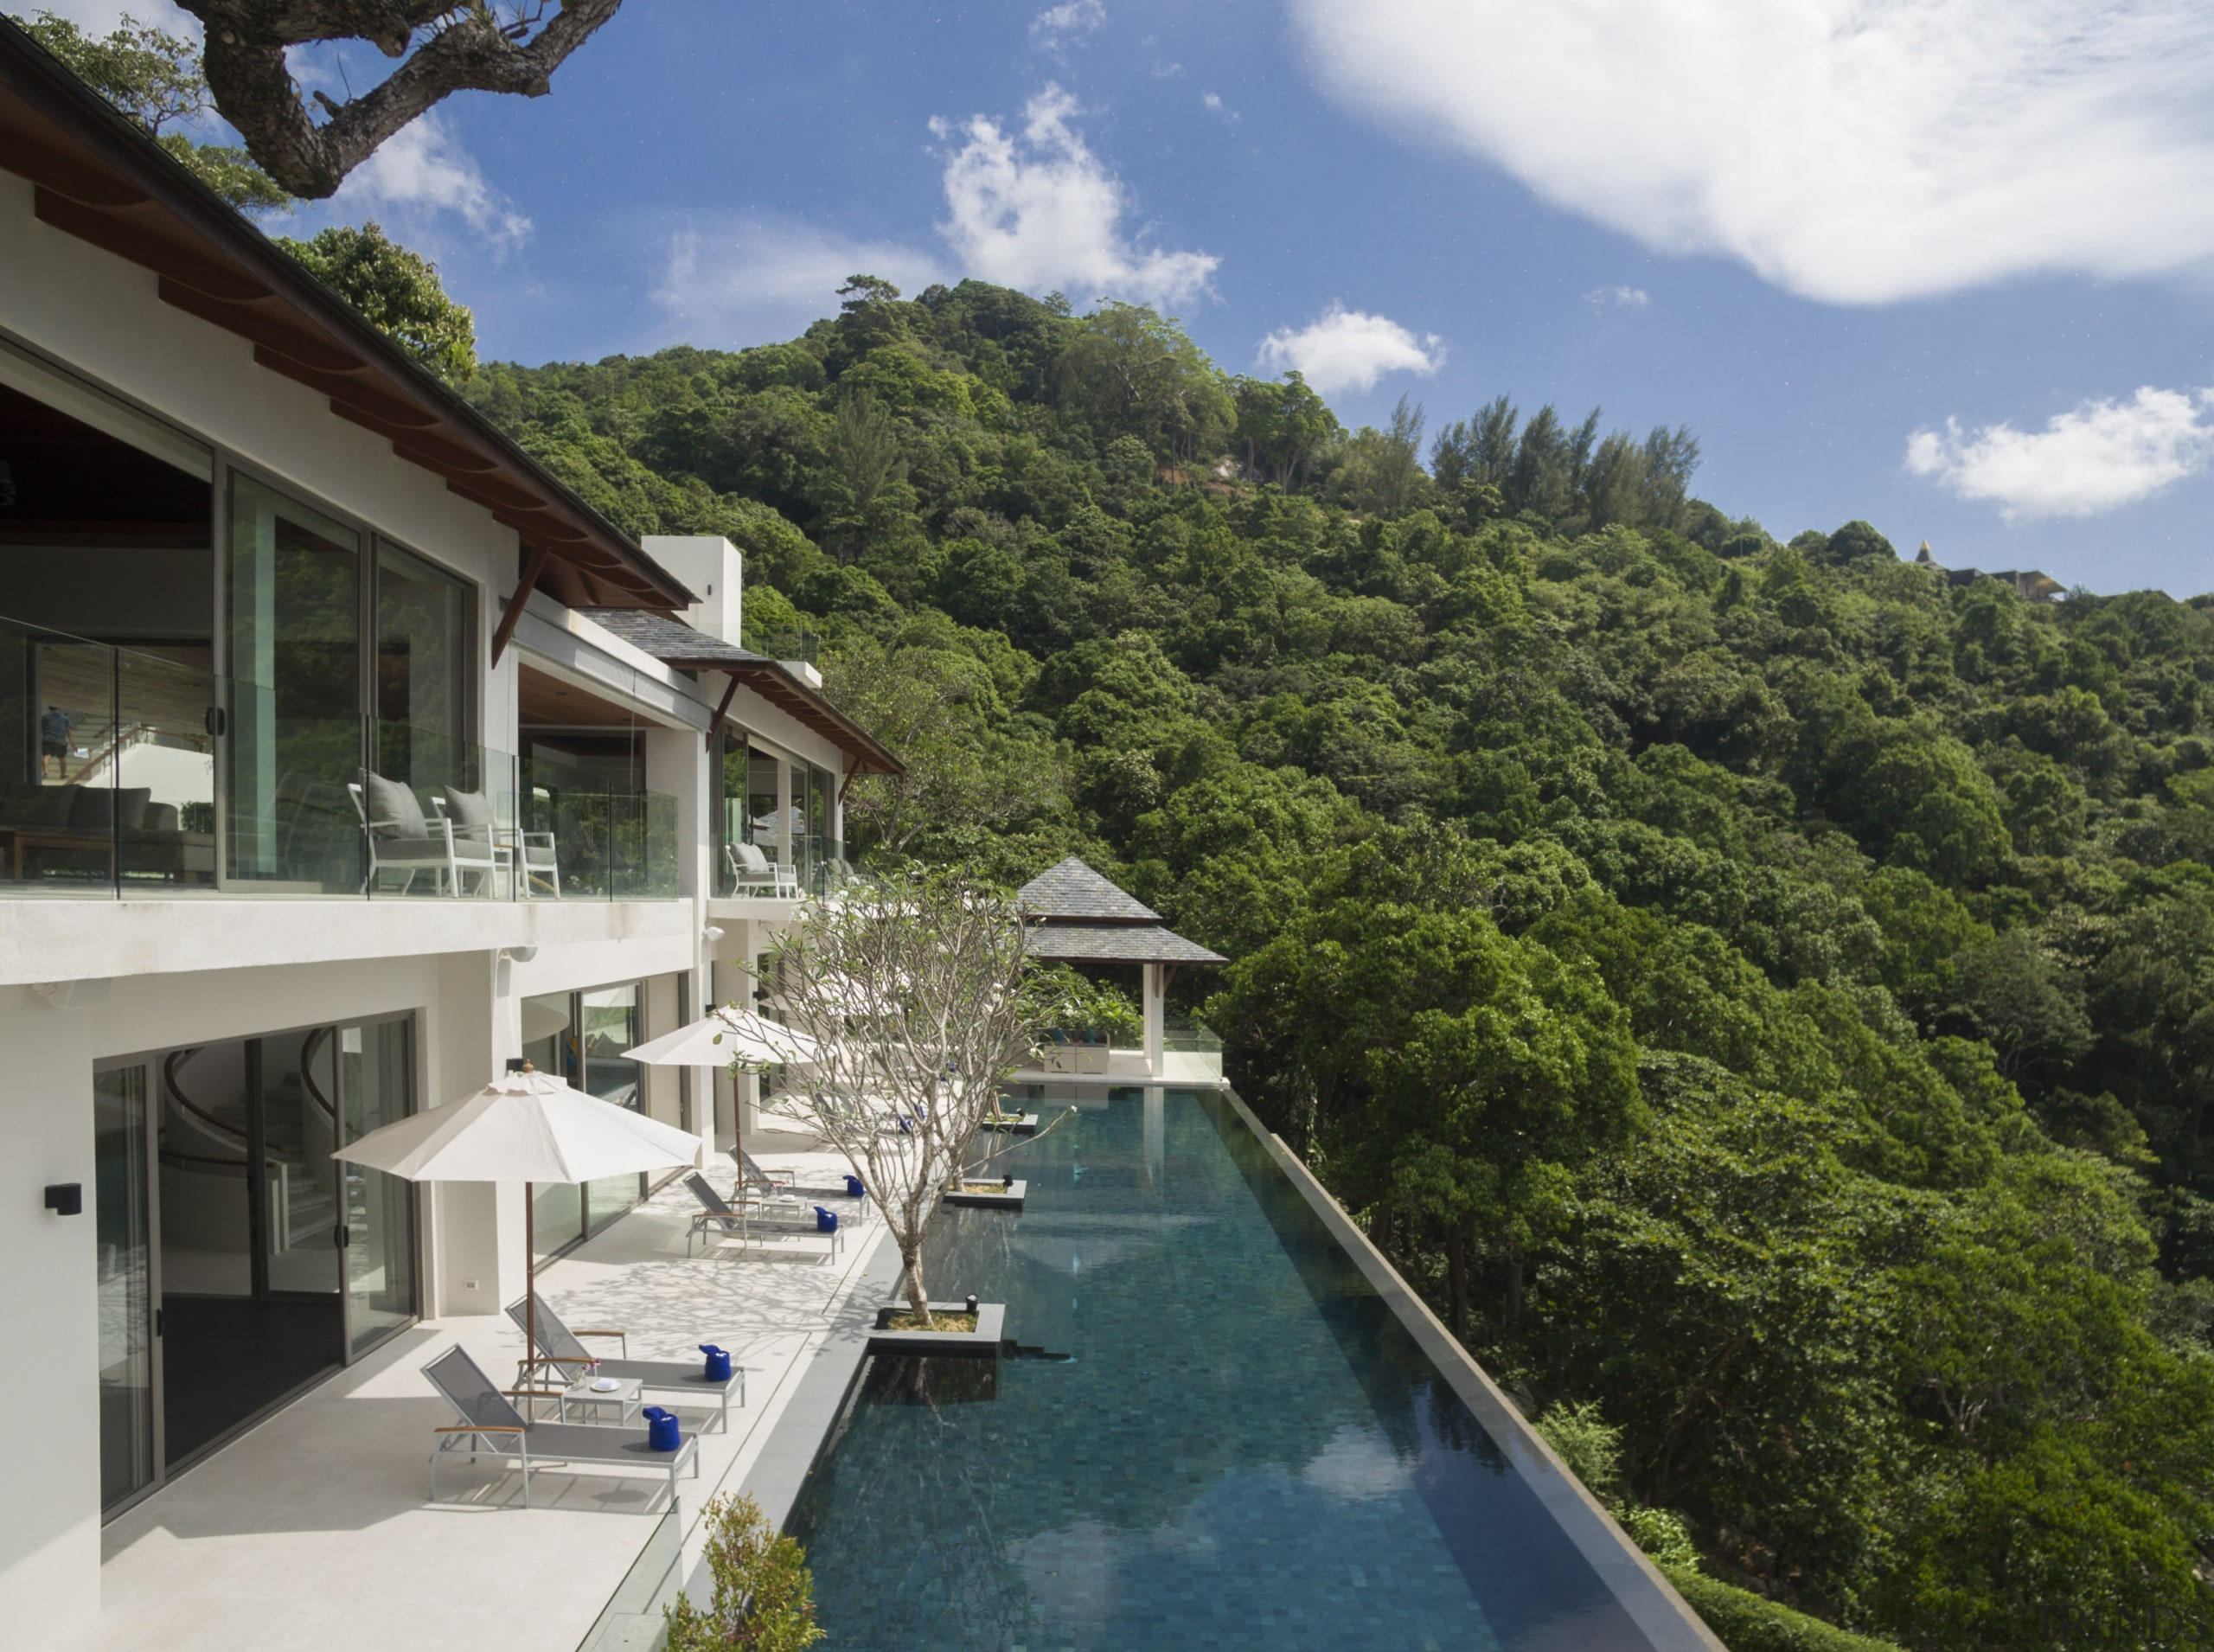 Architect Donal Coyne says this villas 30m pool condominium, cottage, estate, home, house, leisure, property, real estate, resort, resort town, swimming pool, vacation, villa